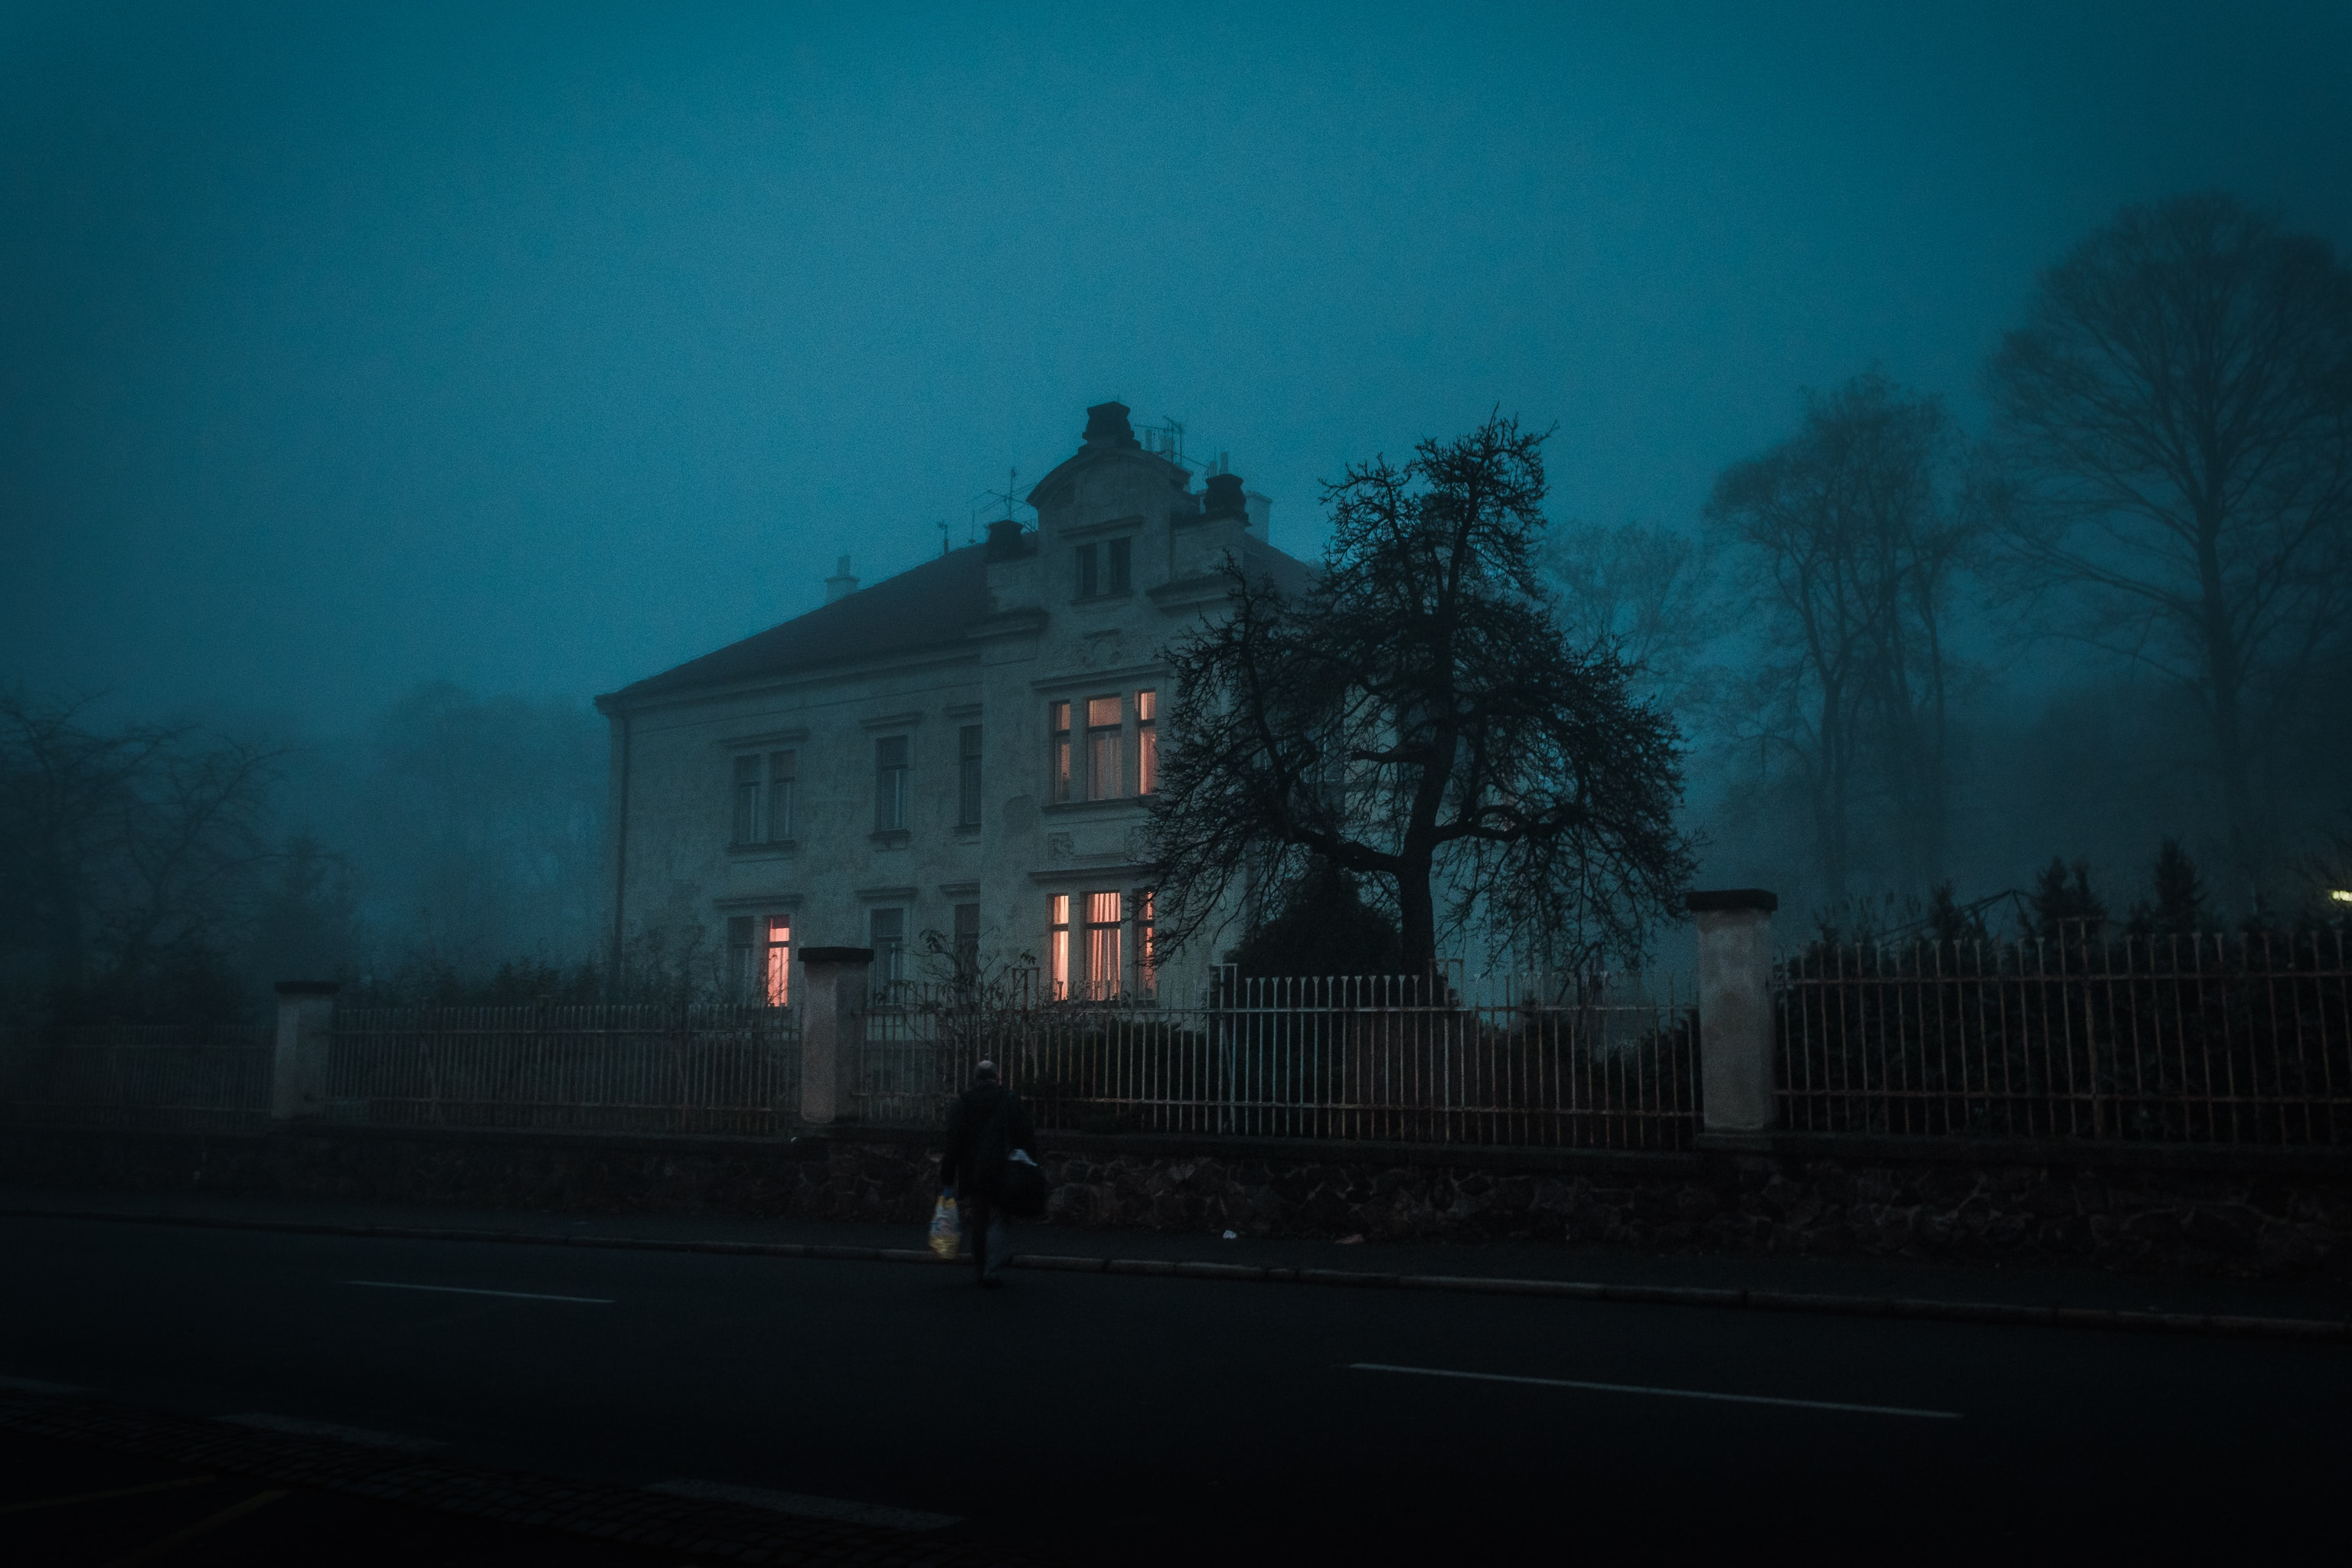 Picture of a house at dusk, surrounded by fog